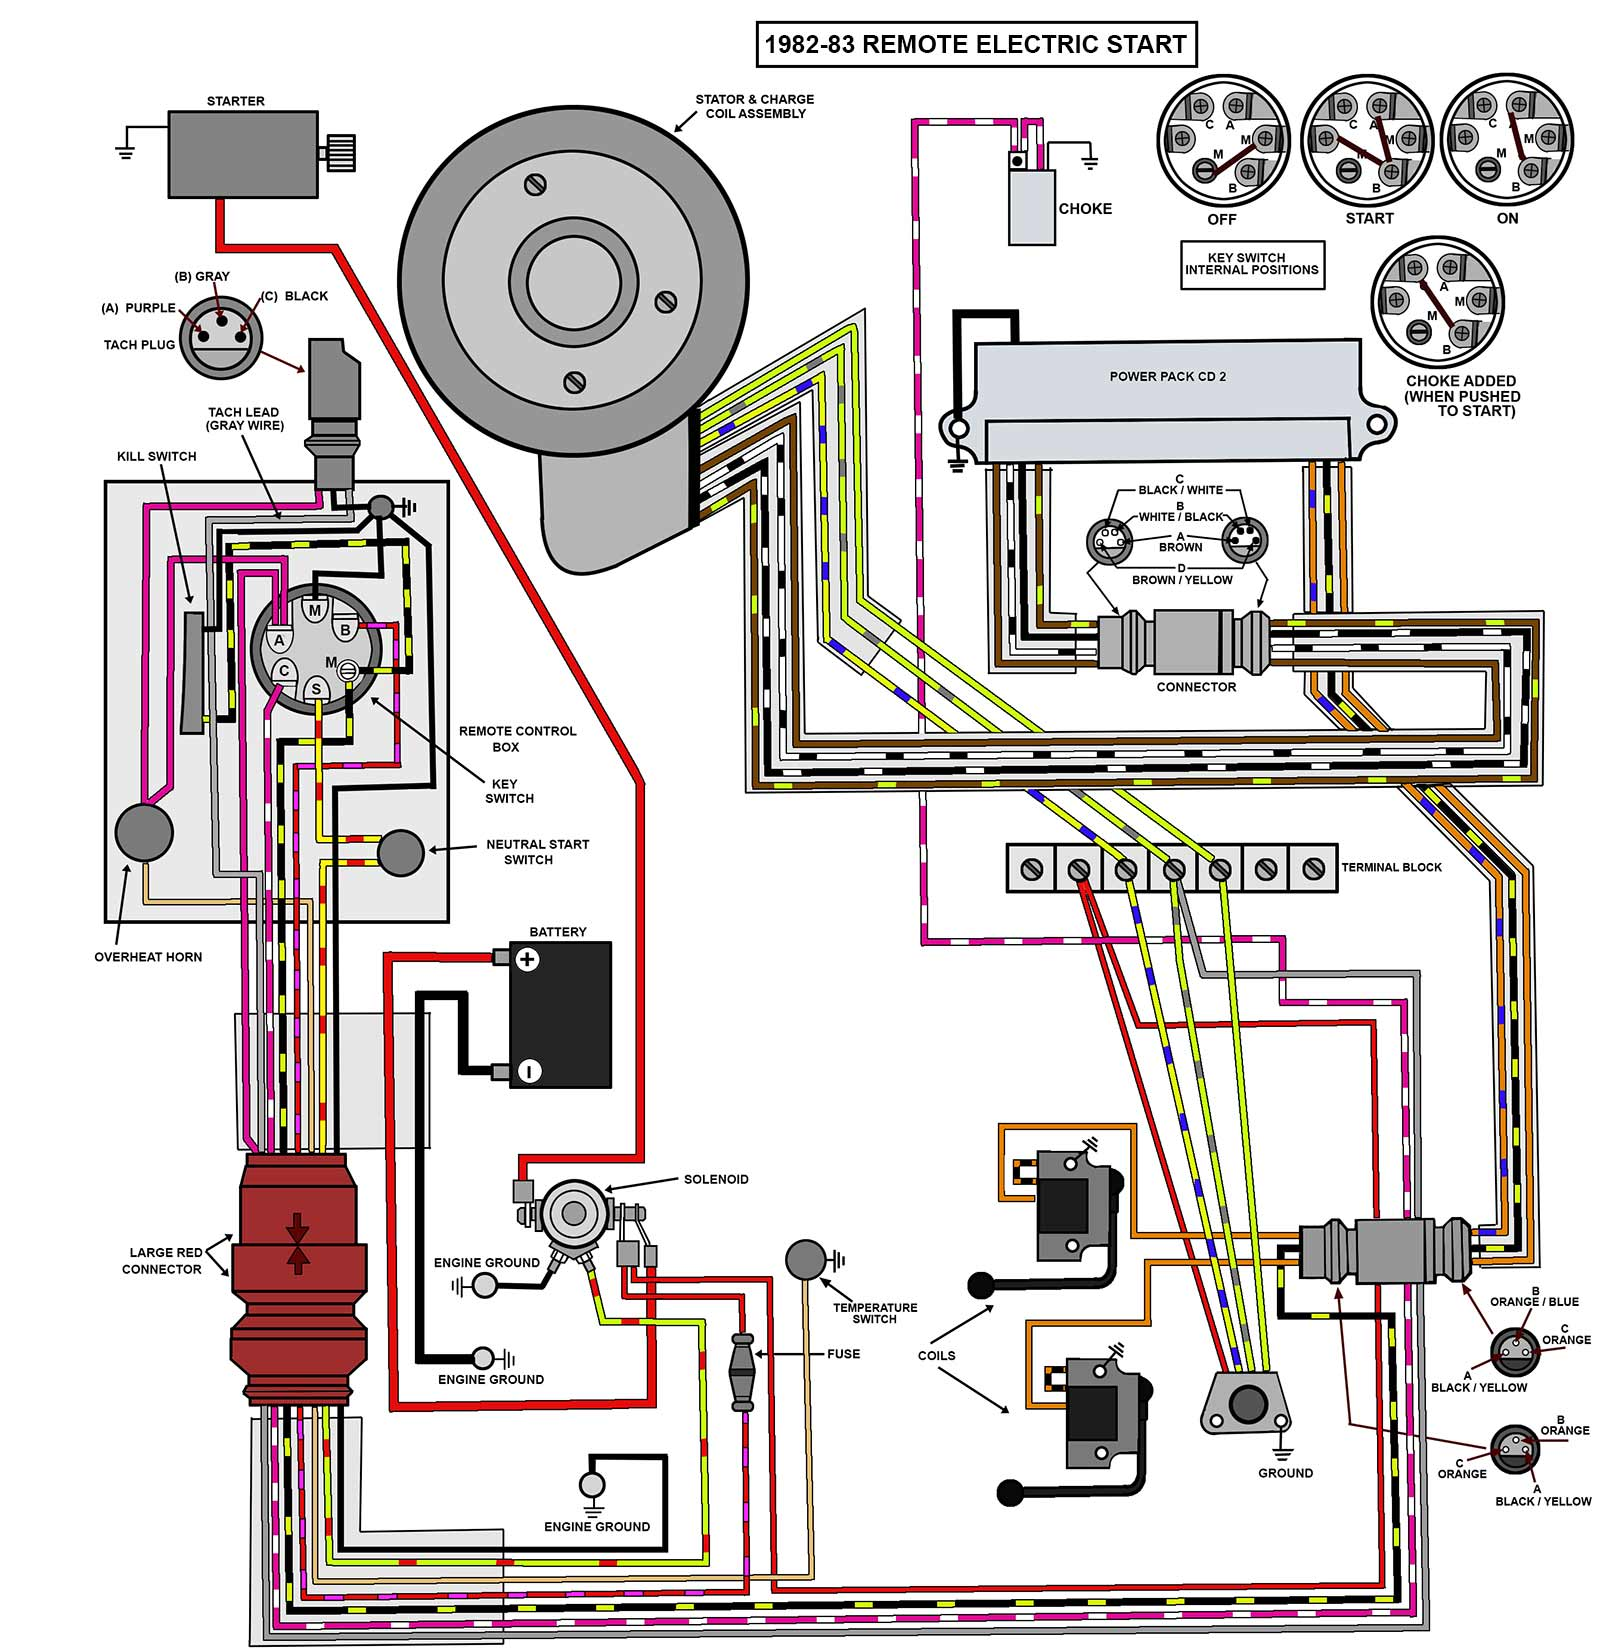 hight resolution of 1986 evinrude 90 hp wiring diagram free picture wiring diagram name johnson 90 wiring diagram